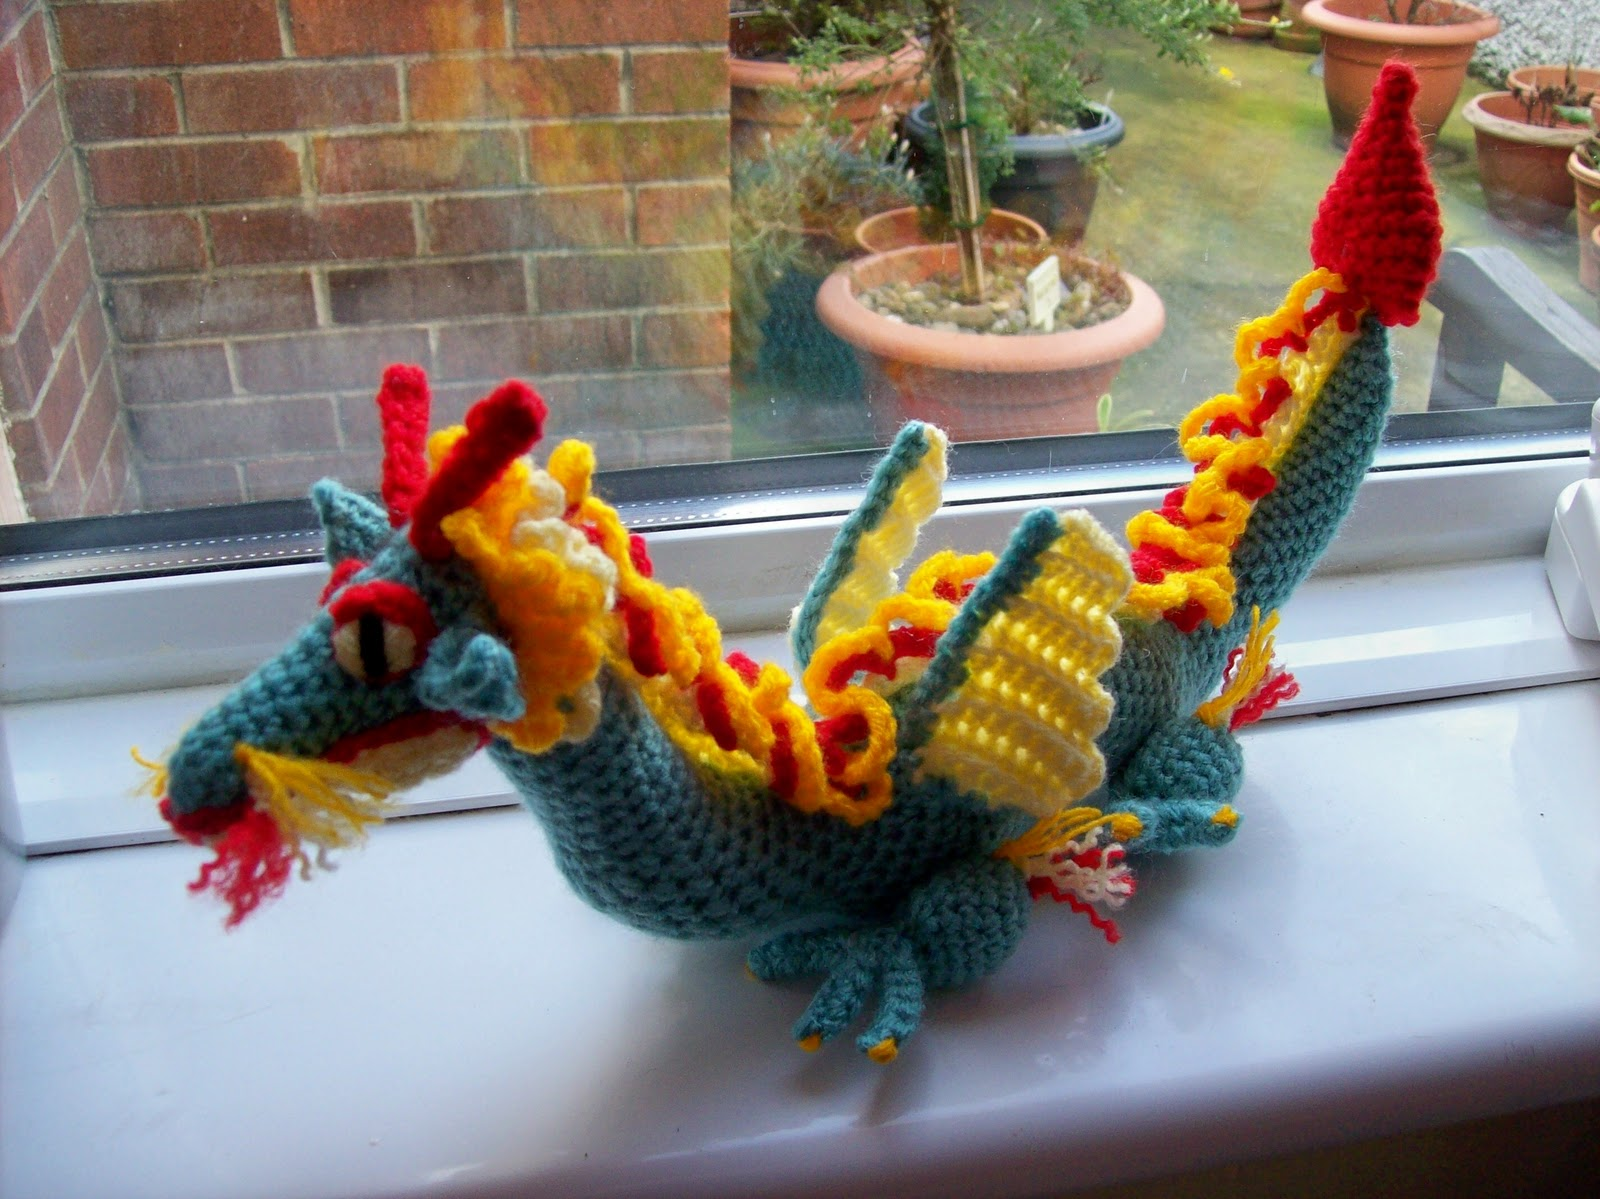 Side View Red Welsh Dragon knitted knitsrus Images - Frompo